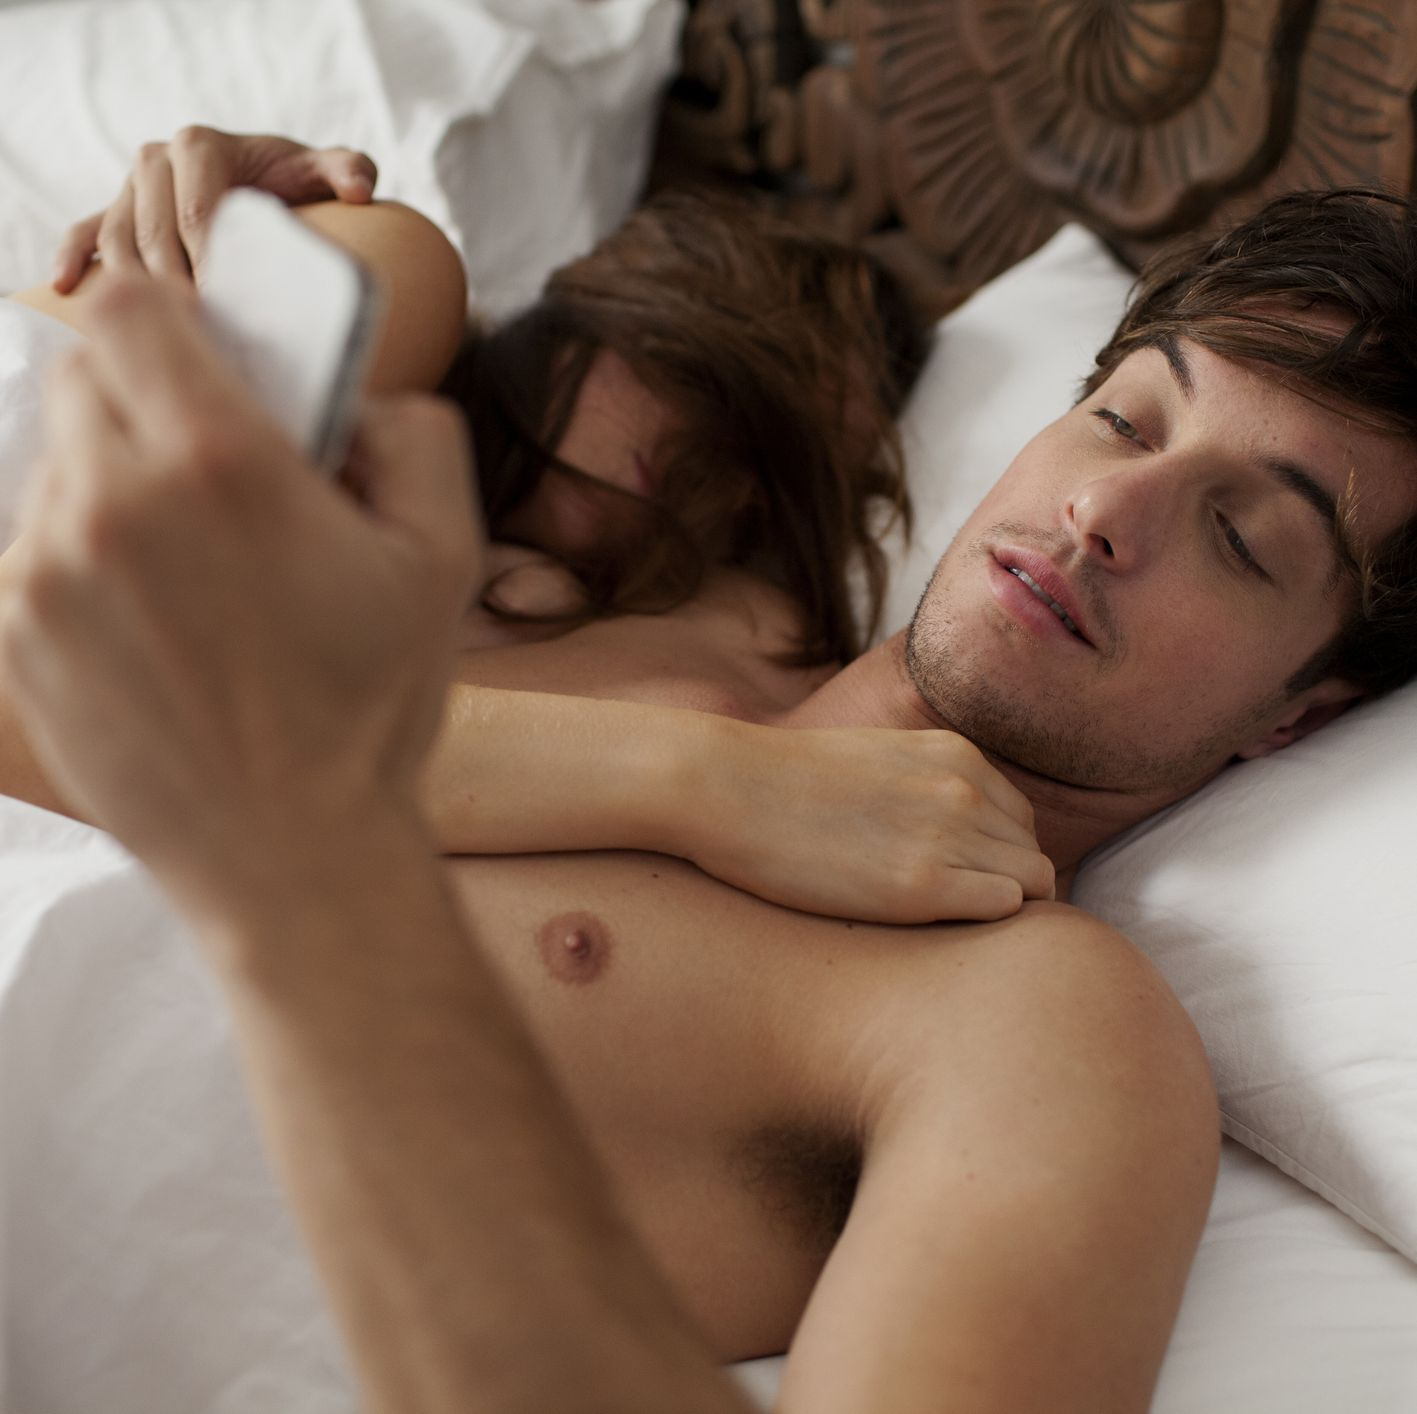 These Are Men's Biggest Sex Questions According to a Sex-Ed App Founder